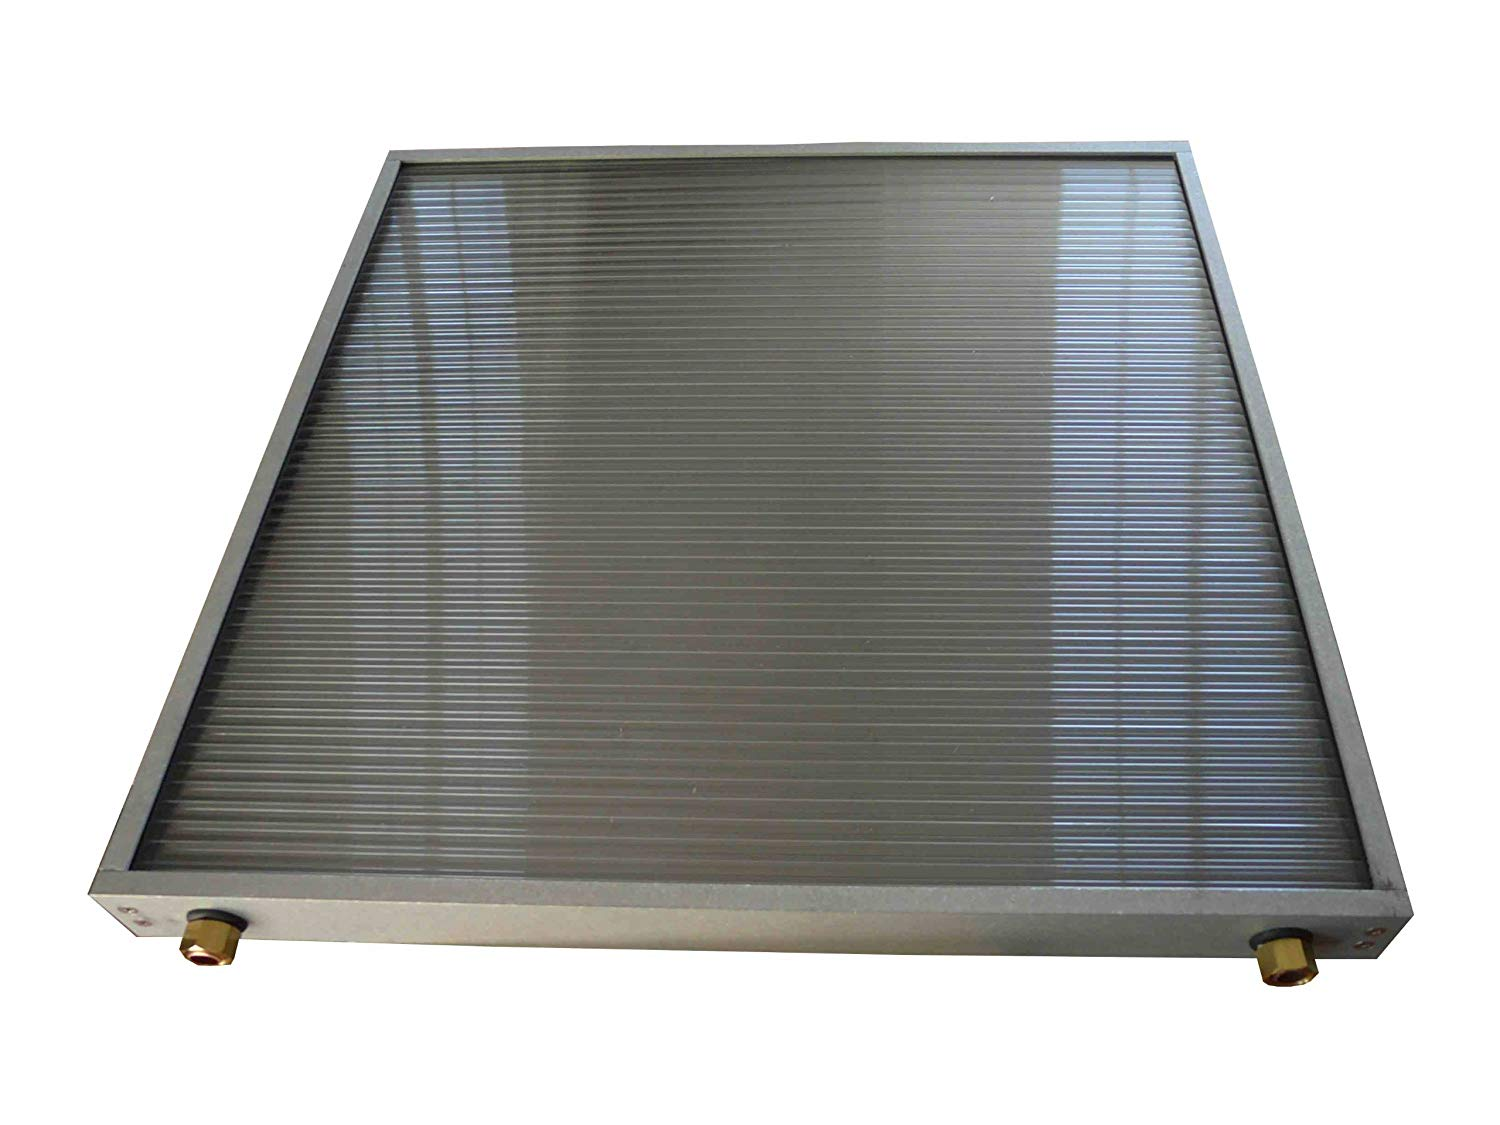 Heliatos EZ-37 Solar Water Heater Panel